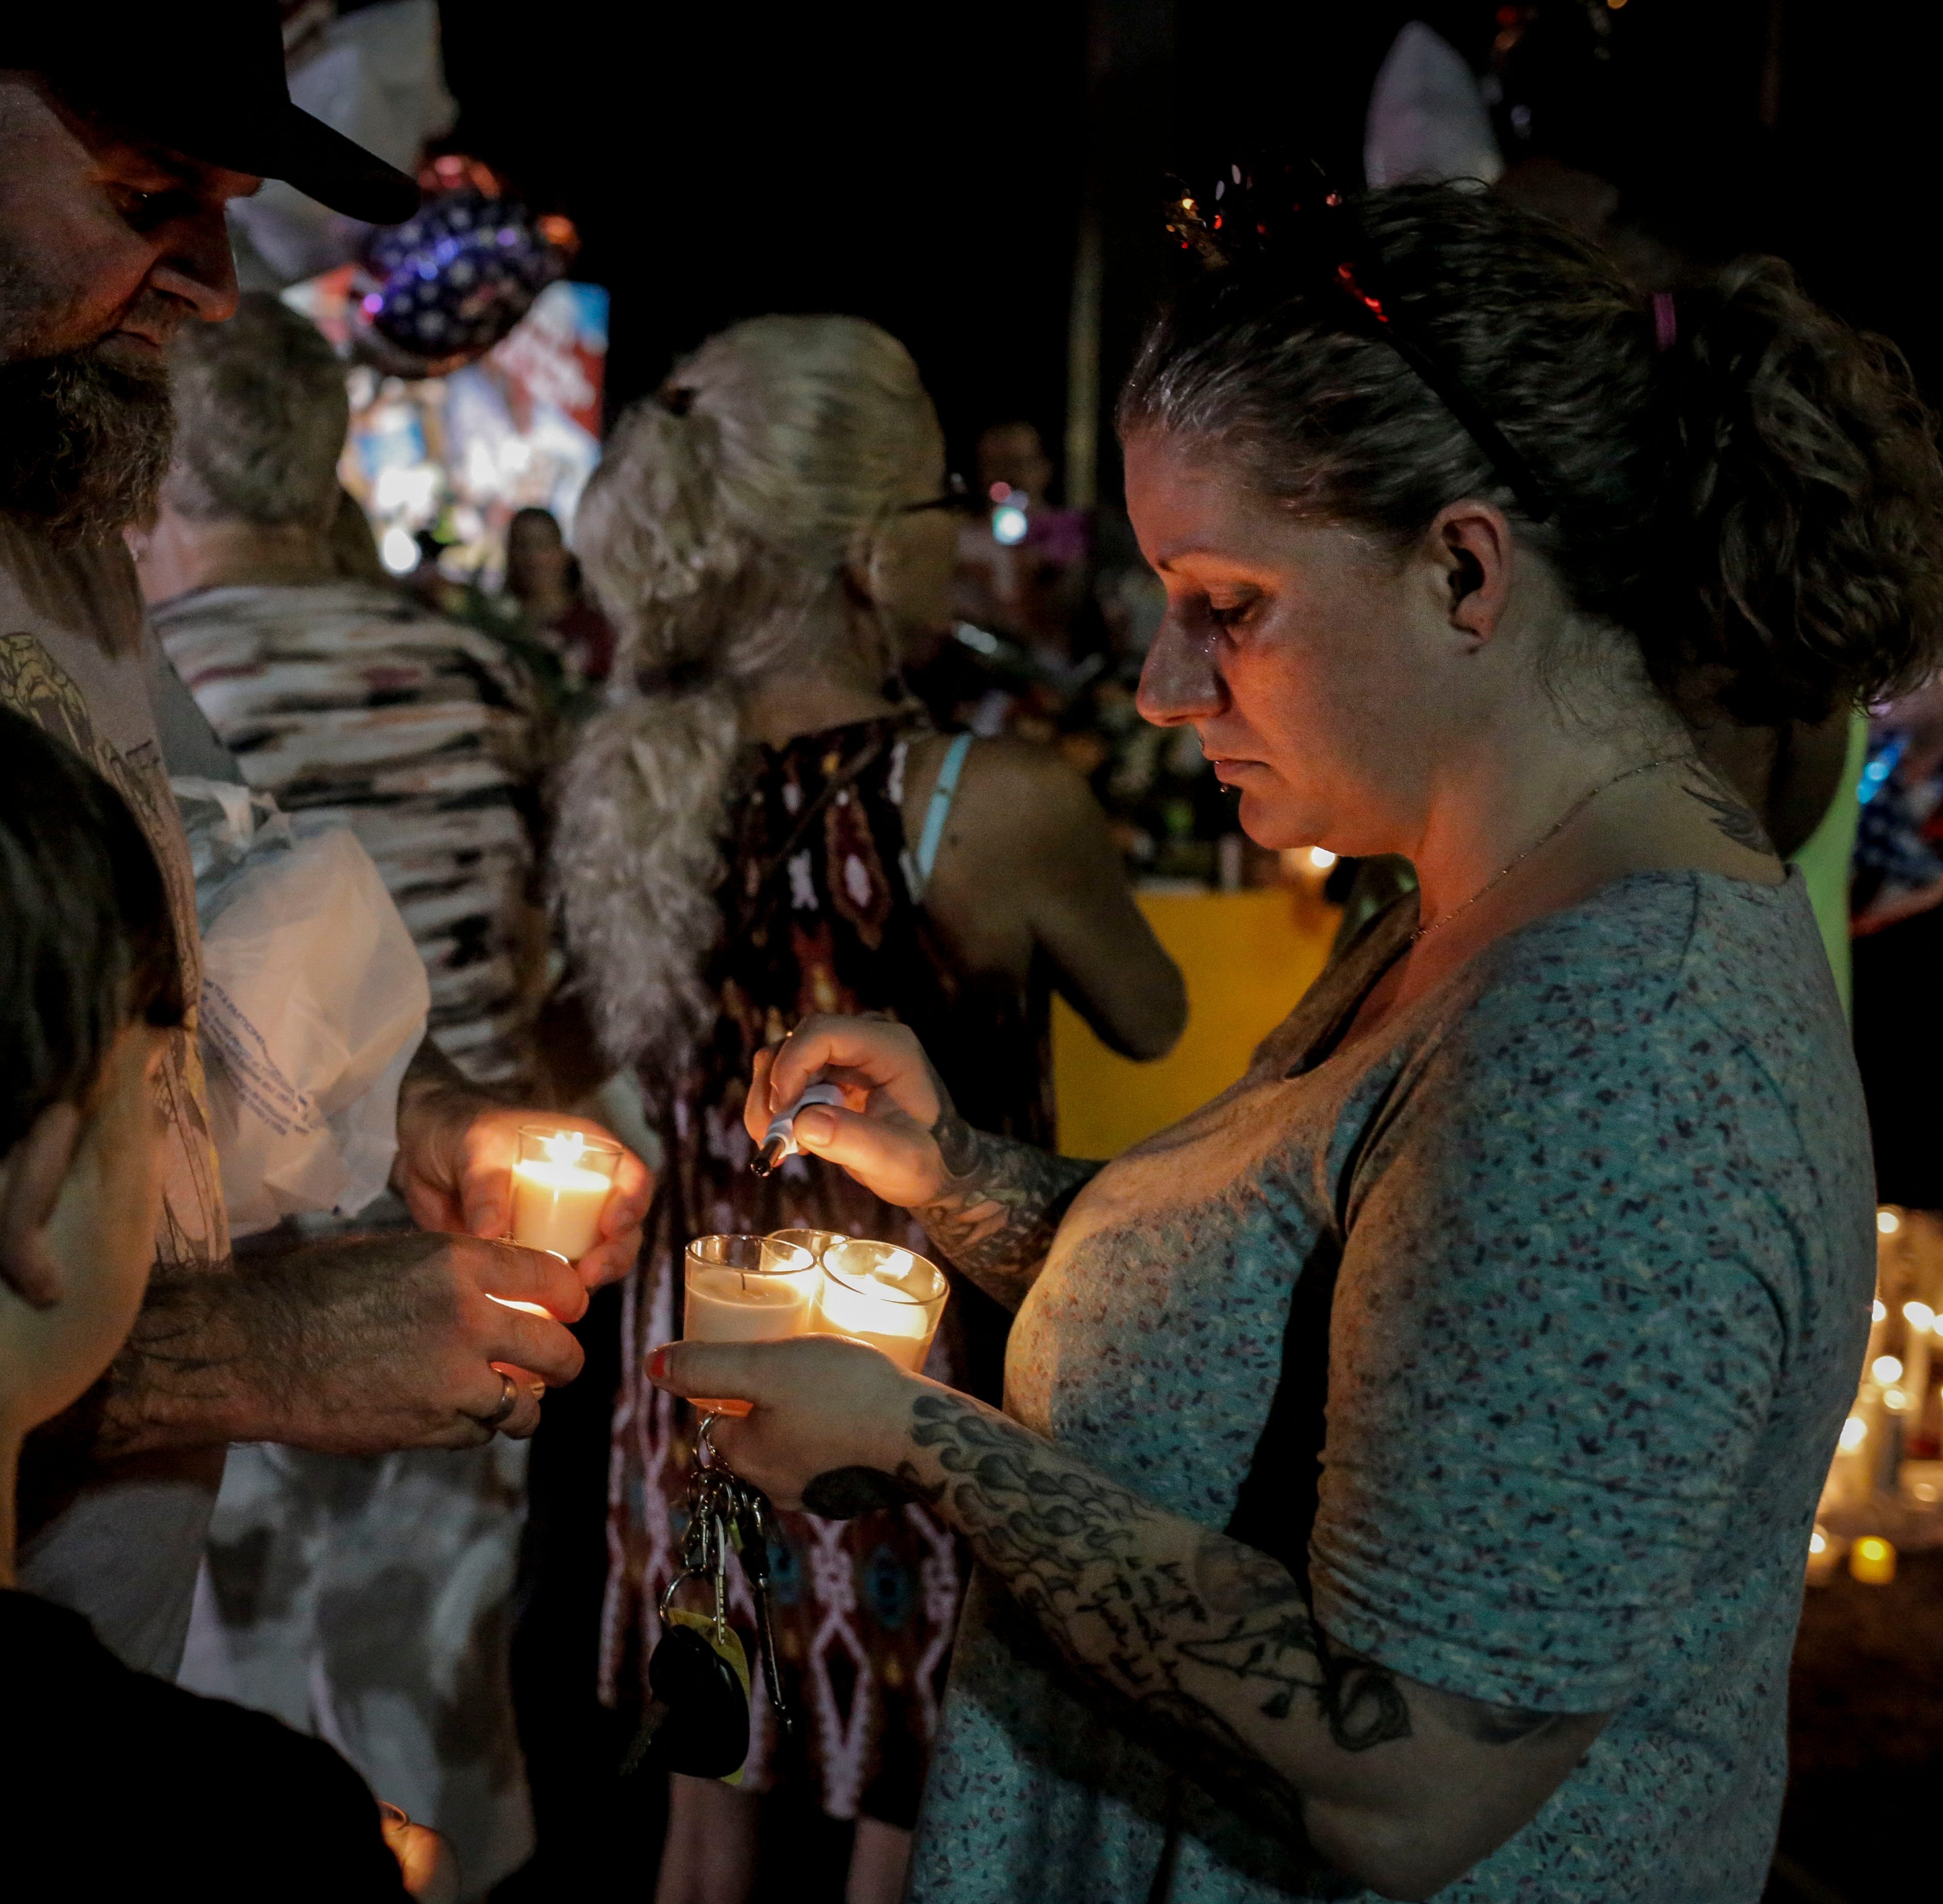 Shana Hamil, right, and Josh Hamil, left, light candles during a vigil in the parking lot outside Ride the Ducks in Branson, Mo. on Friday, July 20, 2018. On Thursday, July 19, 2018, 17 people were killed when a duck boat, an amphibious vehicle, capsized on Table Rock Lake.